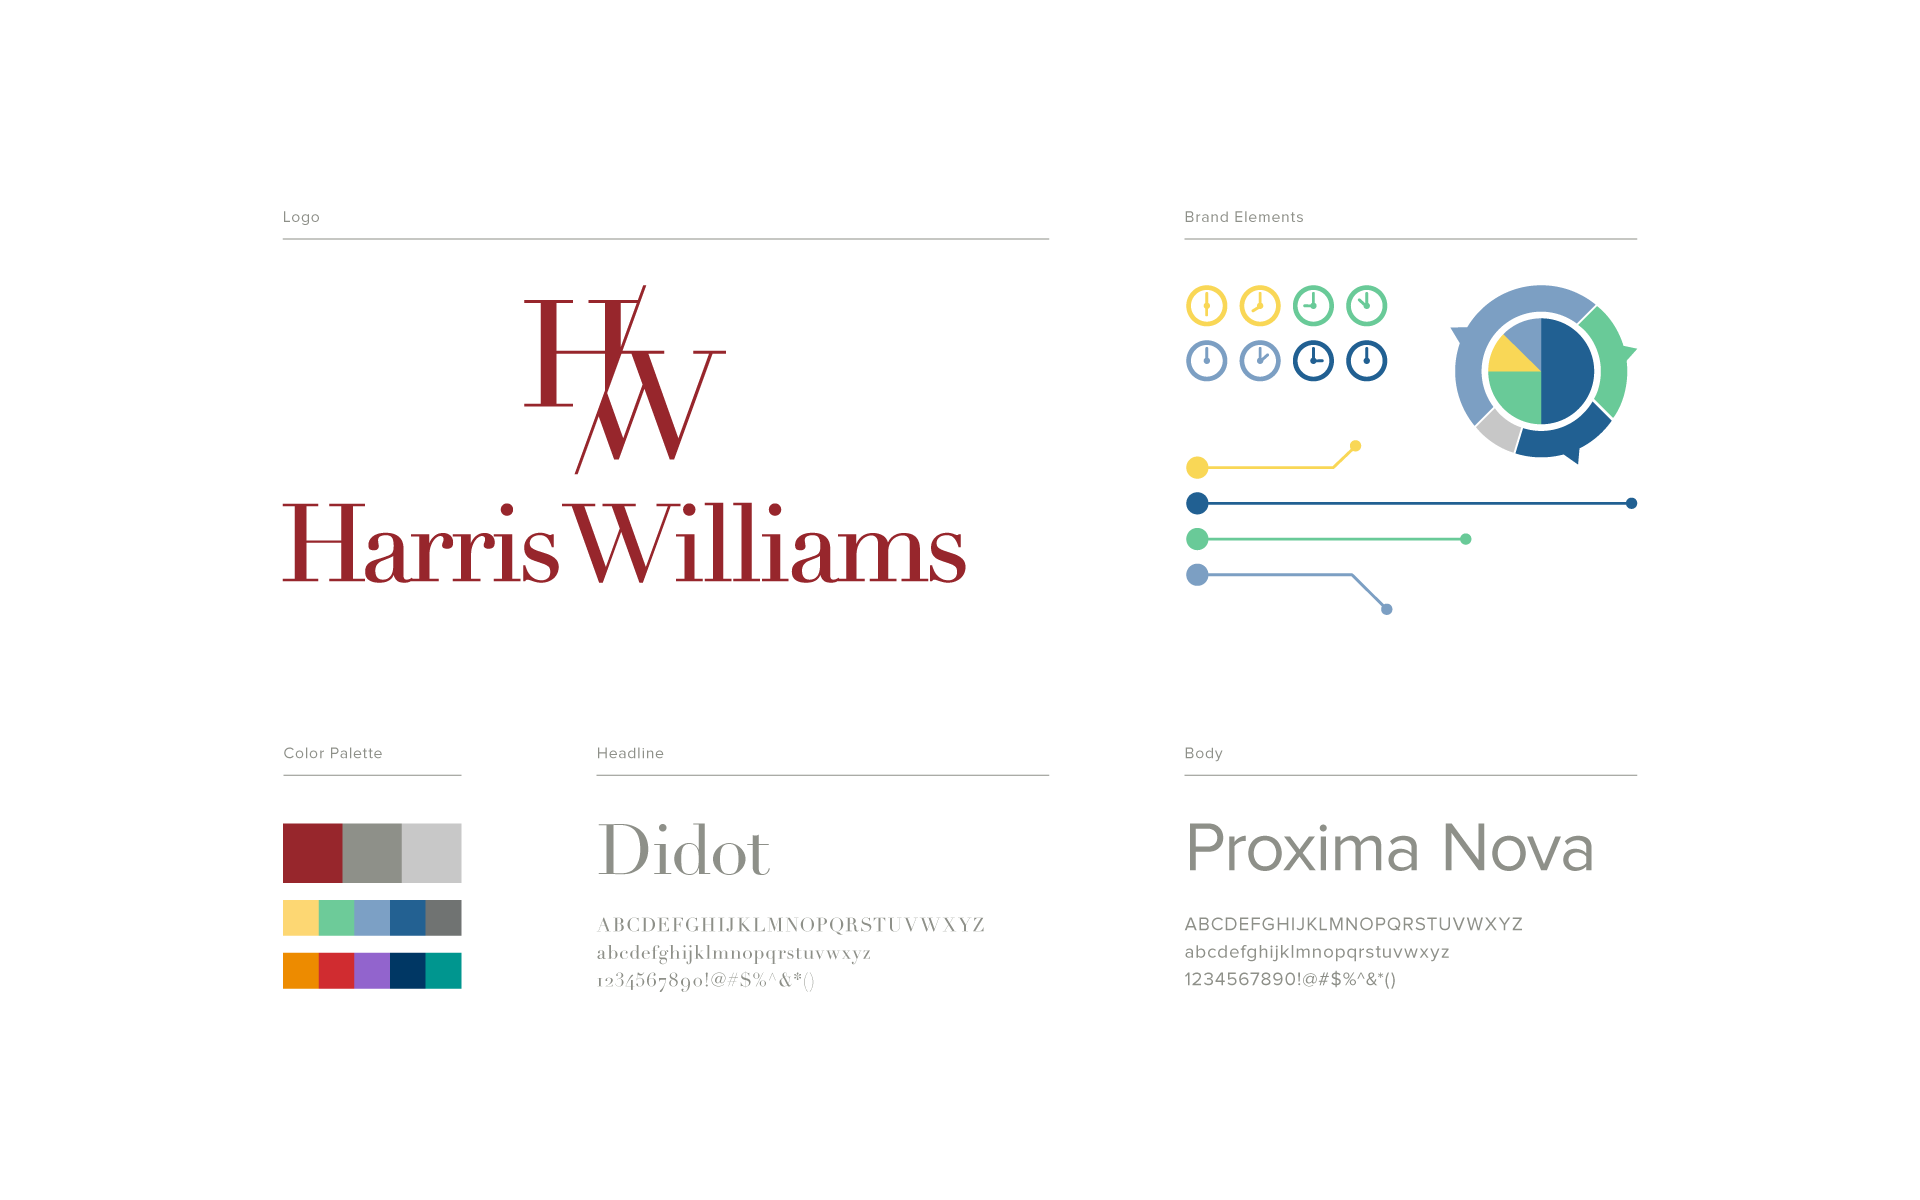 logo, colors and fonts used for Harris Williams branding